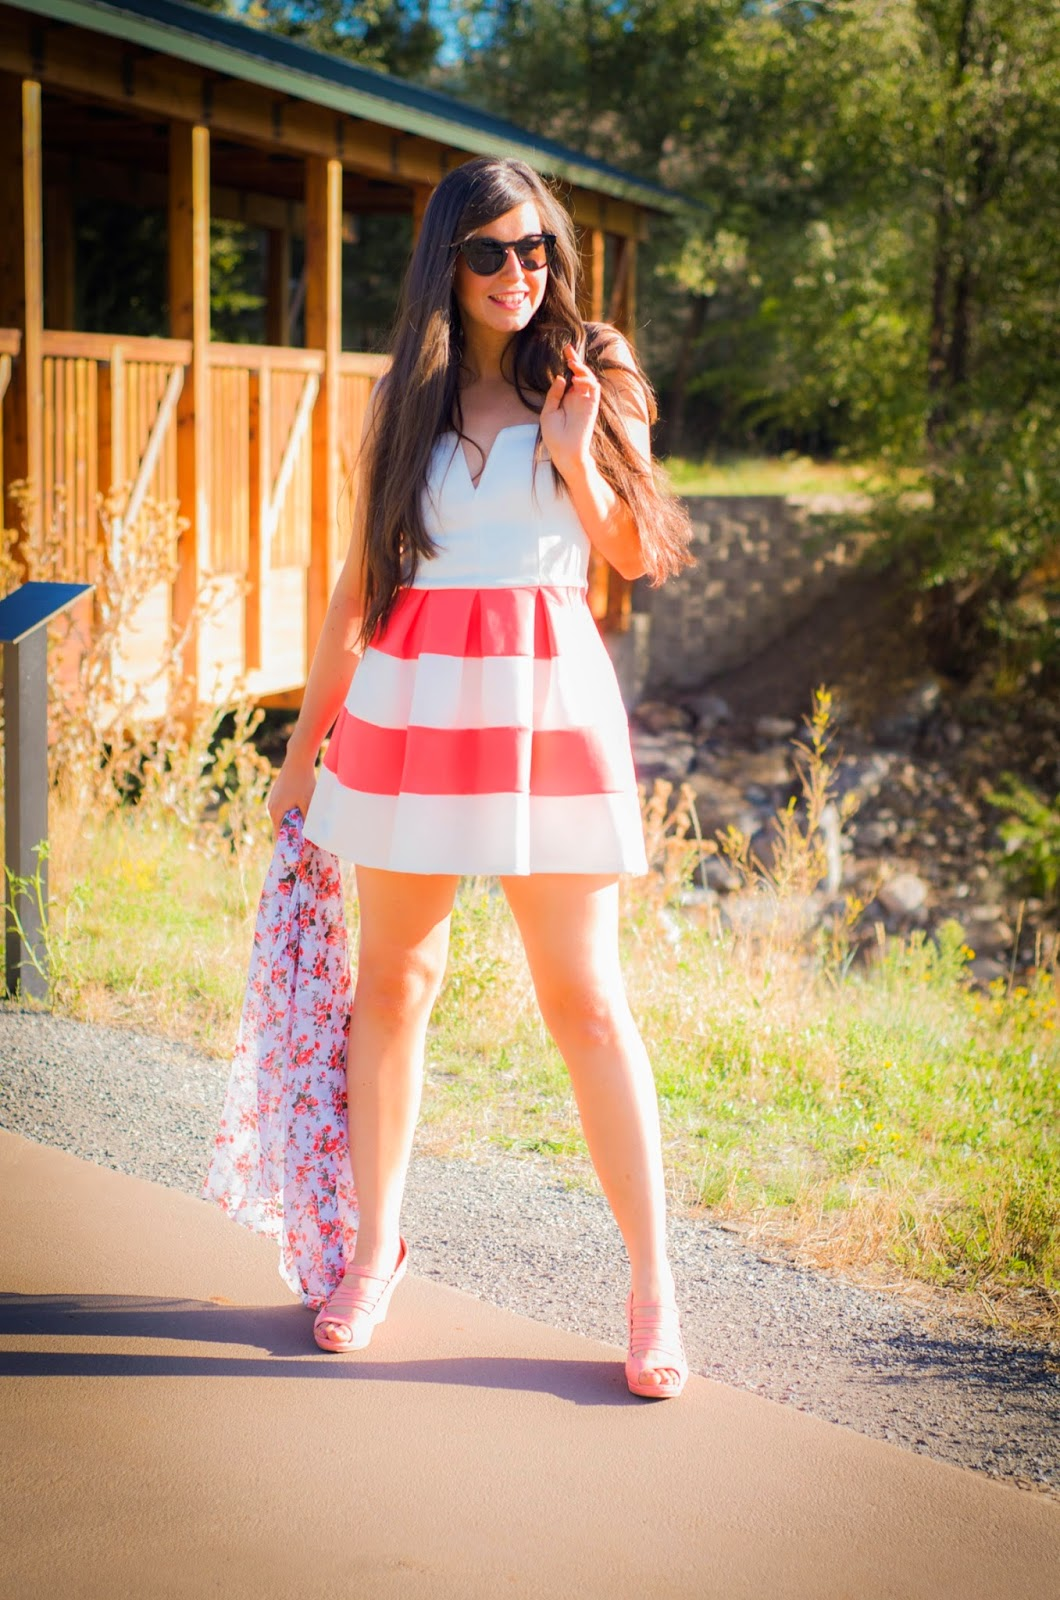 charlotte russe, kimono, skater dress, baby doll dress, strapless dress, amiclubwear shoes, strap wedges, wedges, 2 ways to wear a skater dress, pink and white dress, cute,